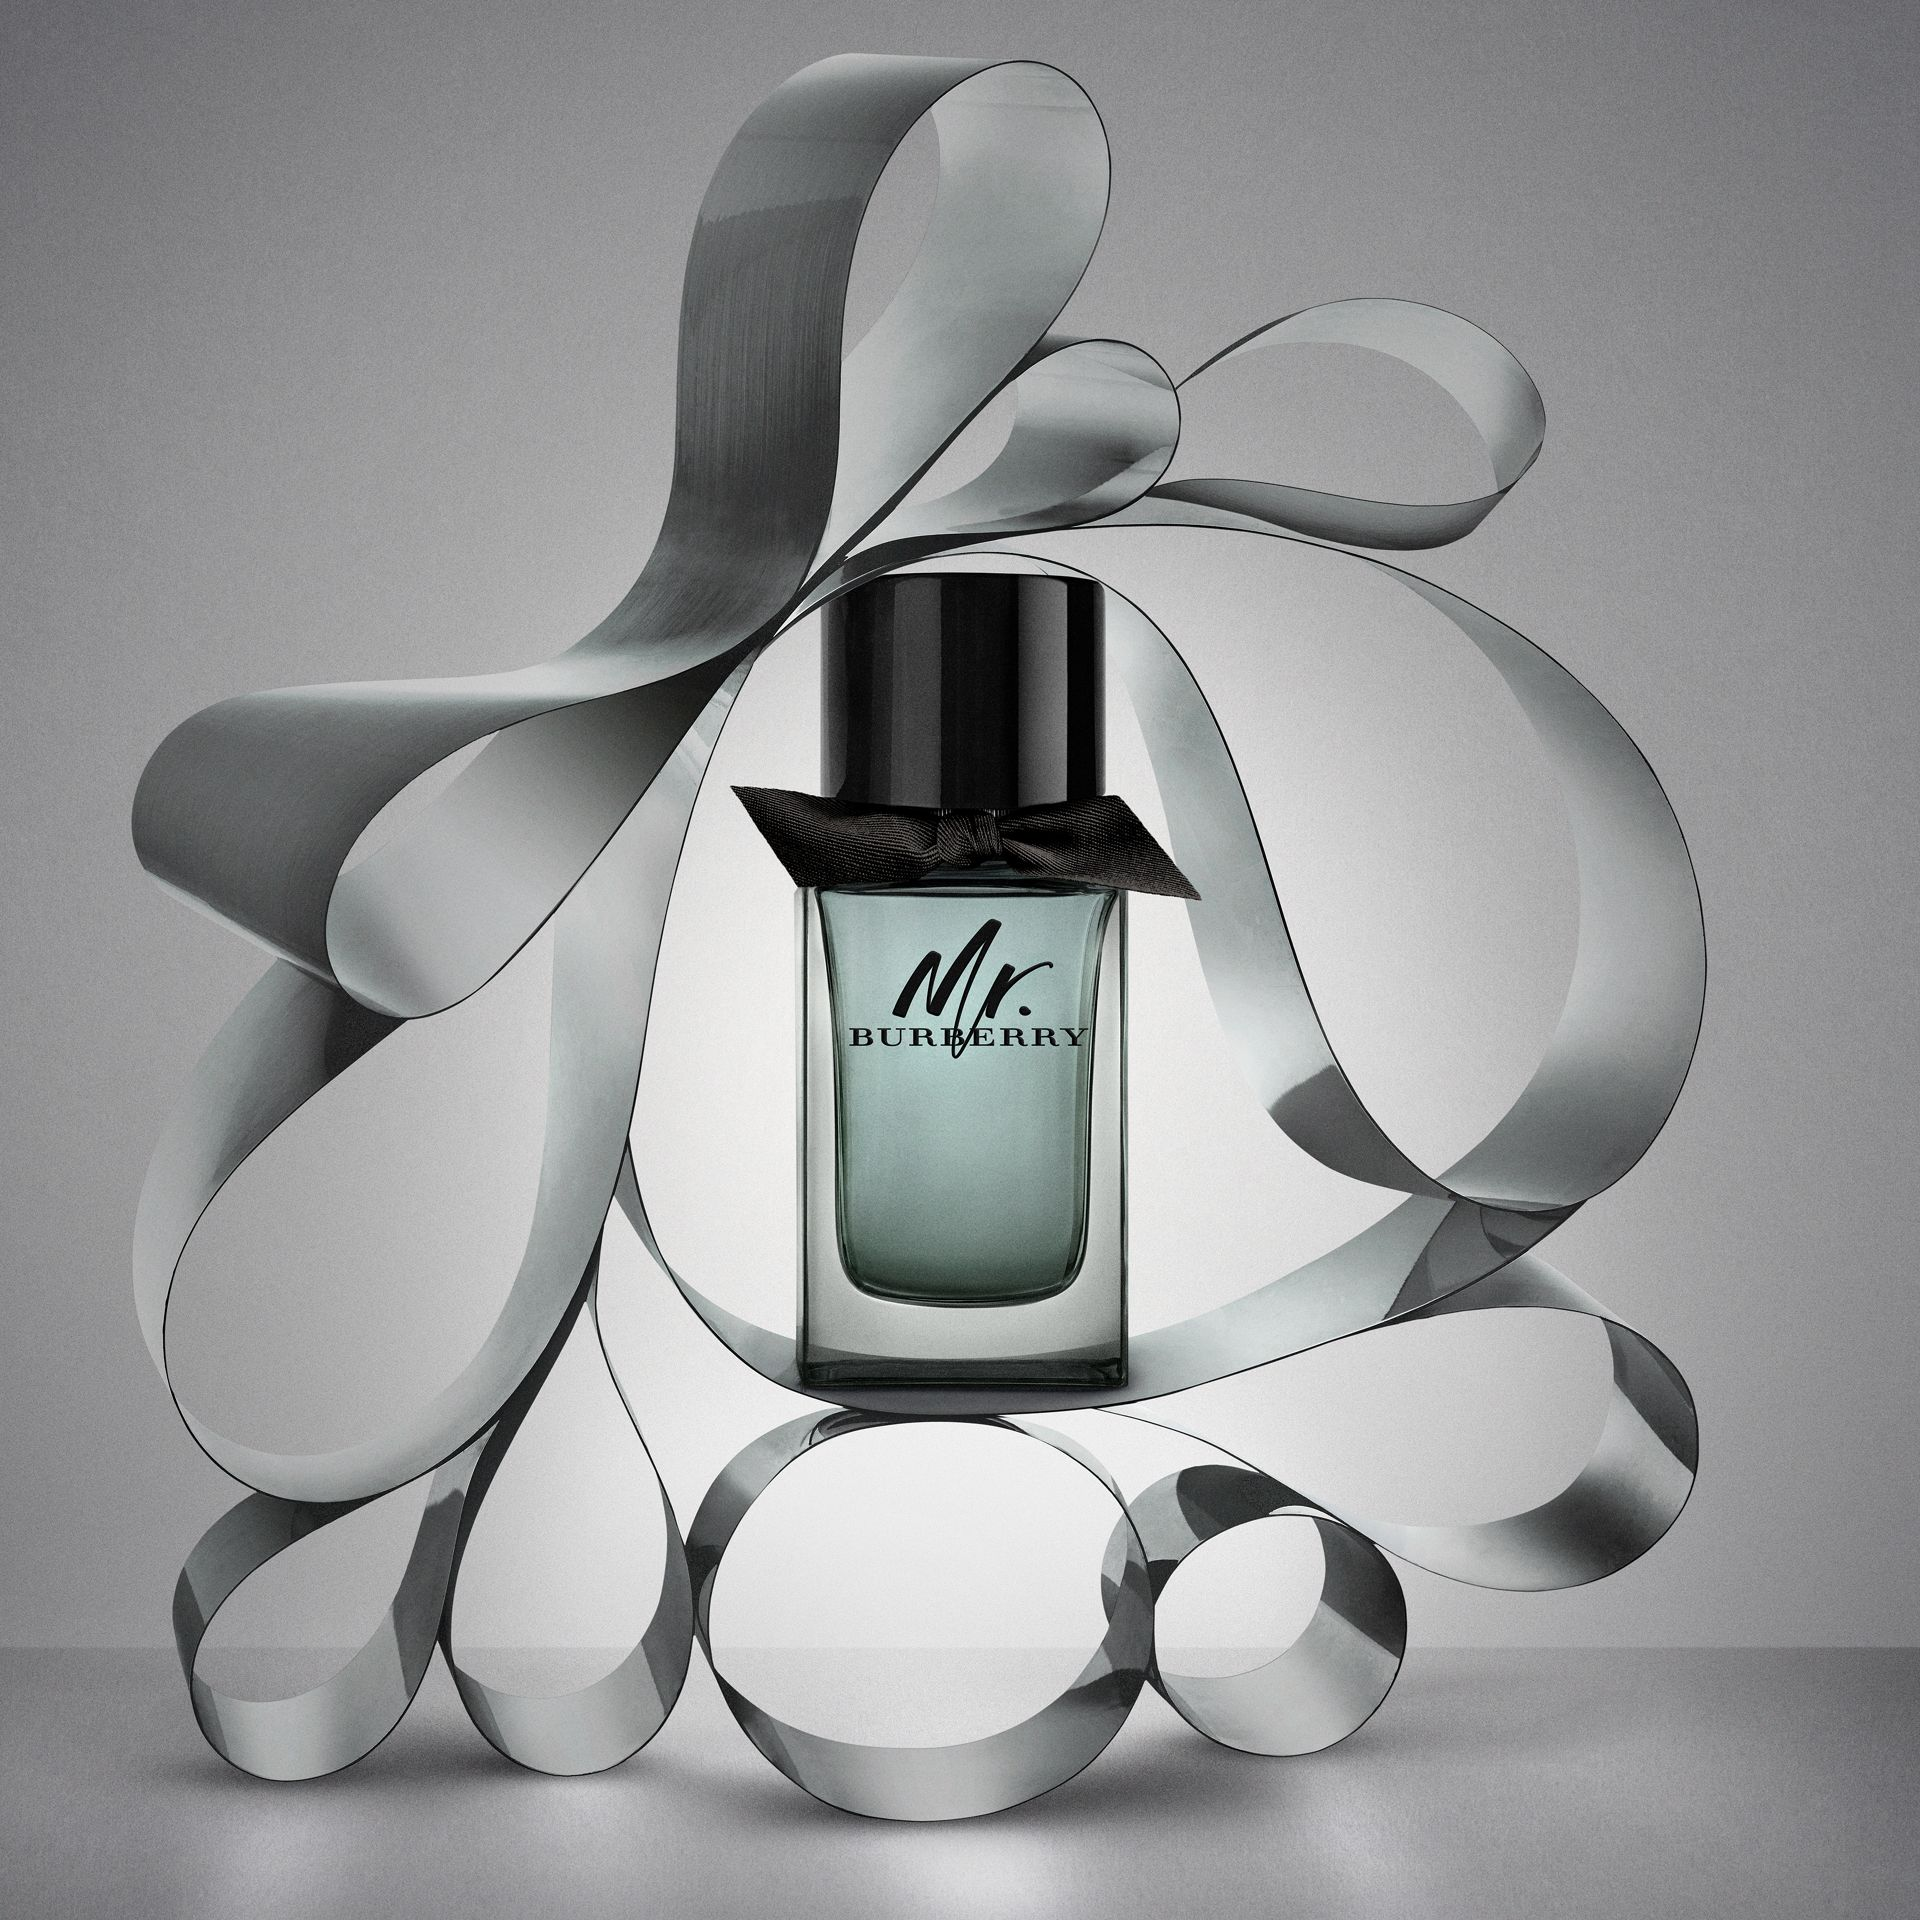 Mr. Burberry Eau de Parfum Festive Set in No Colour - Men | Burberry - gallery image 2